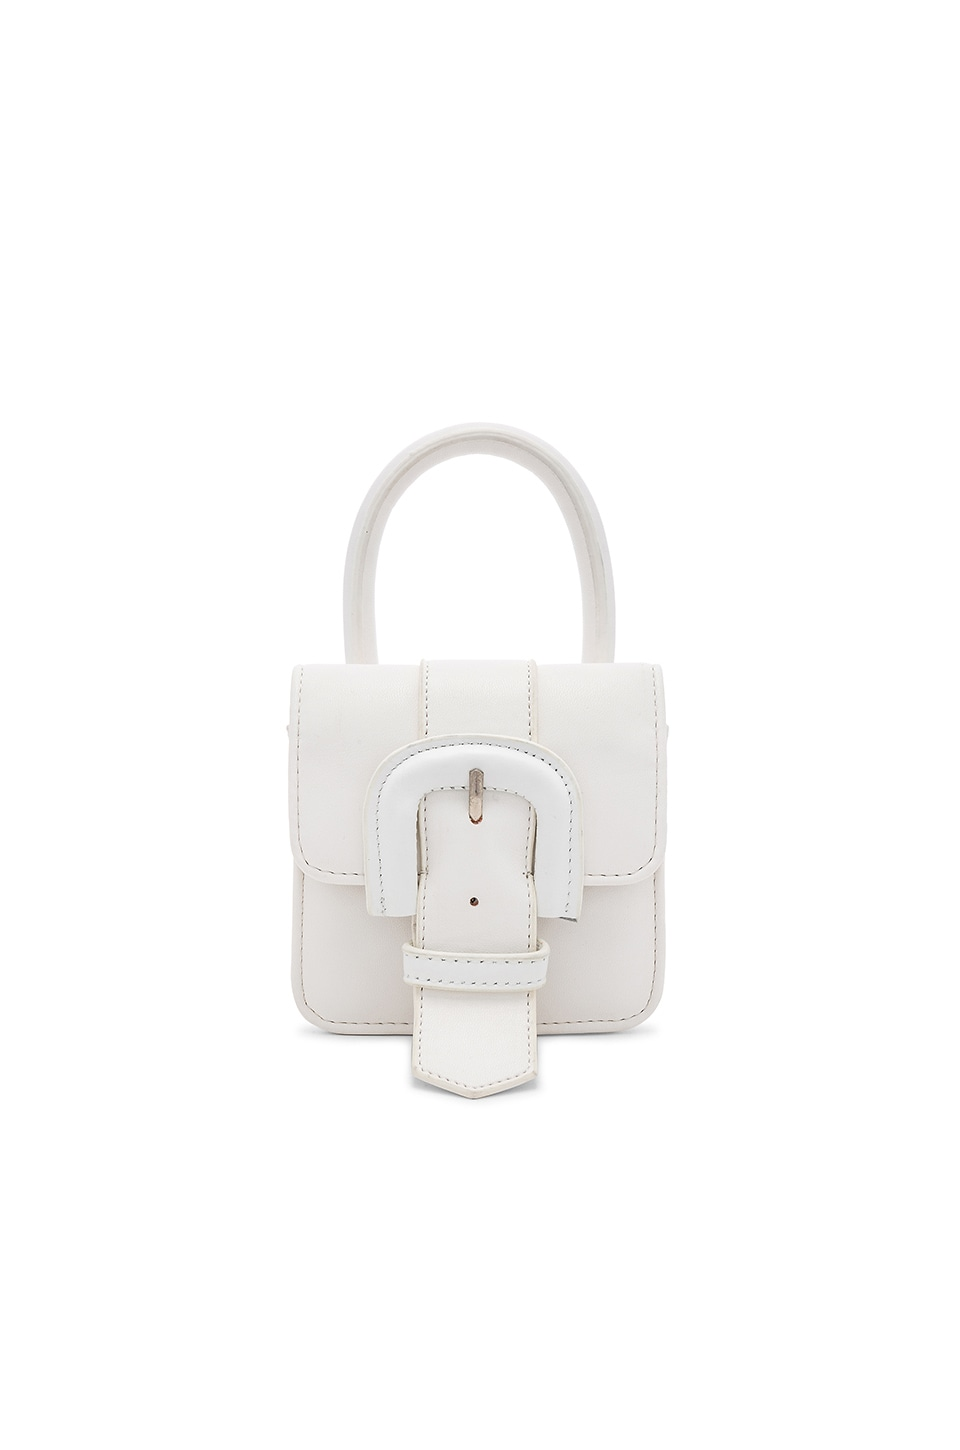 House of Harlow 1960 x REVOLVE Ilena Micro Bag in White